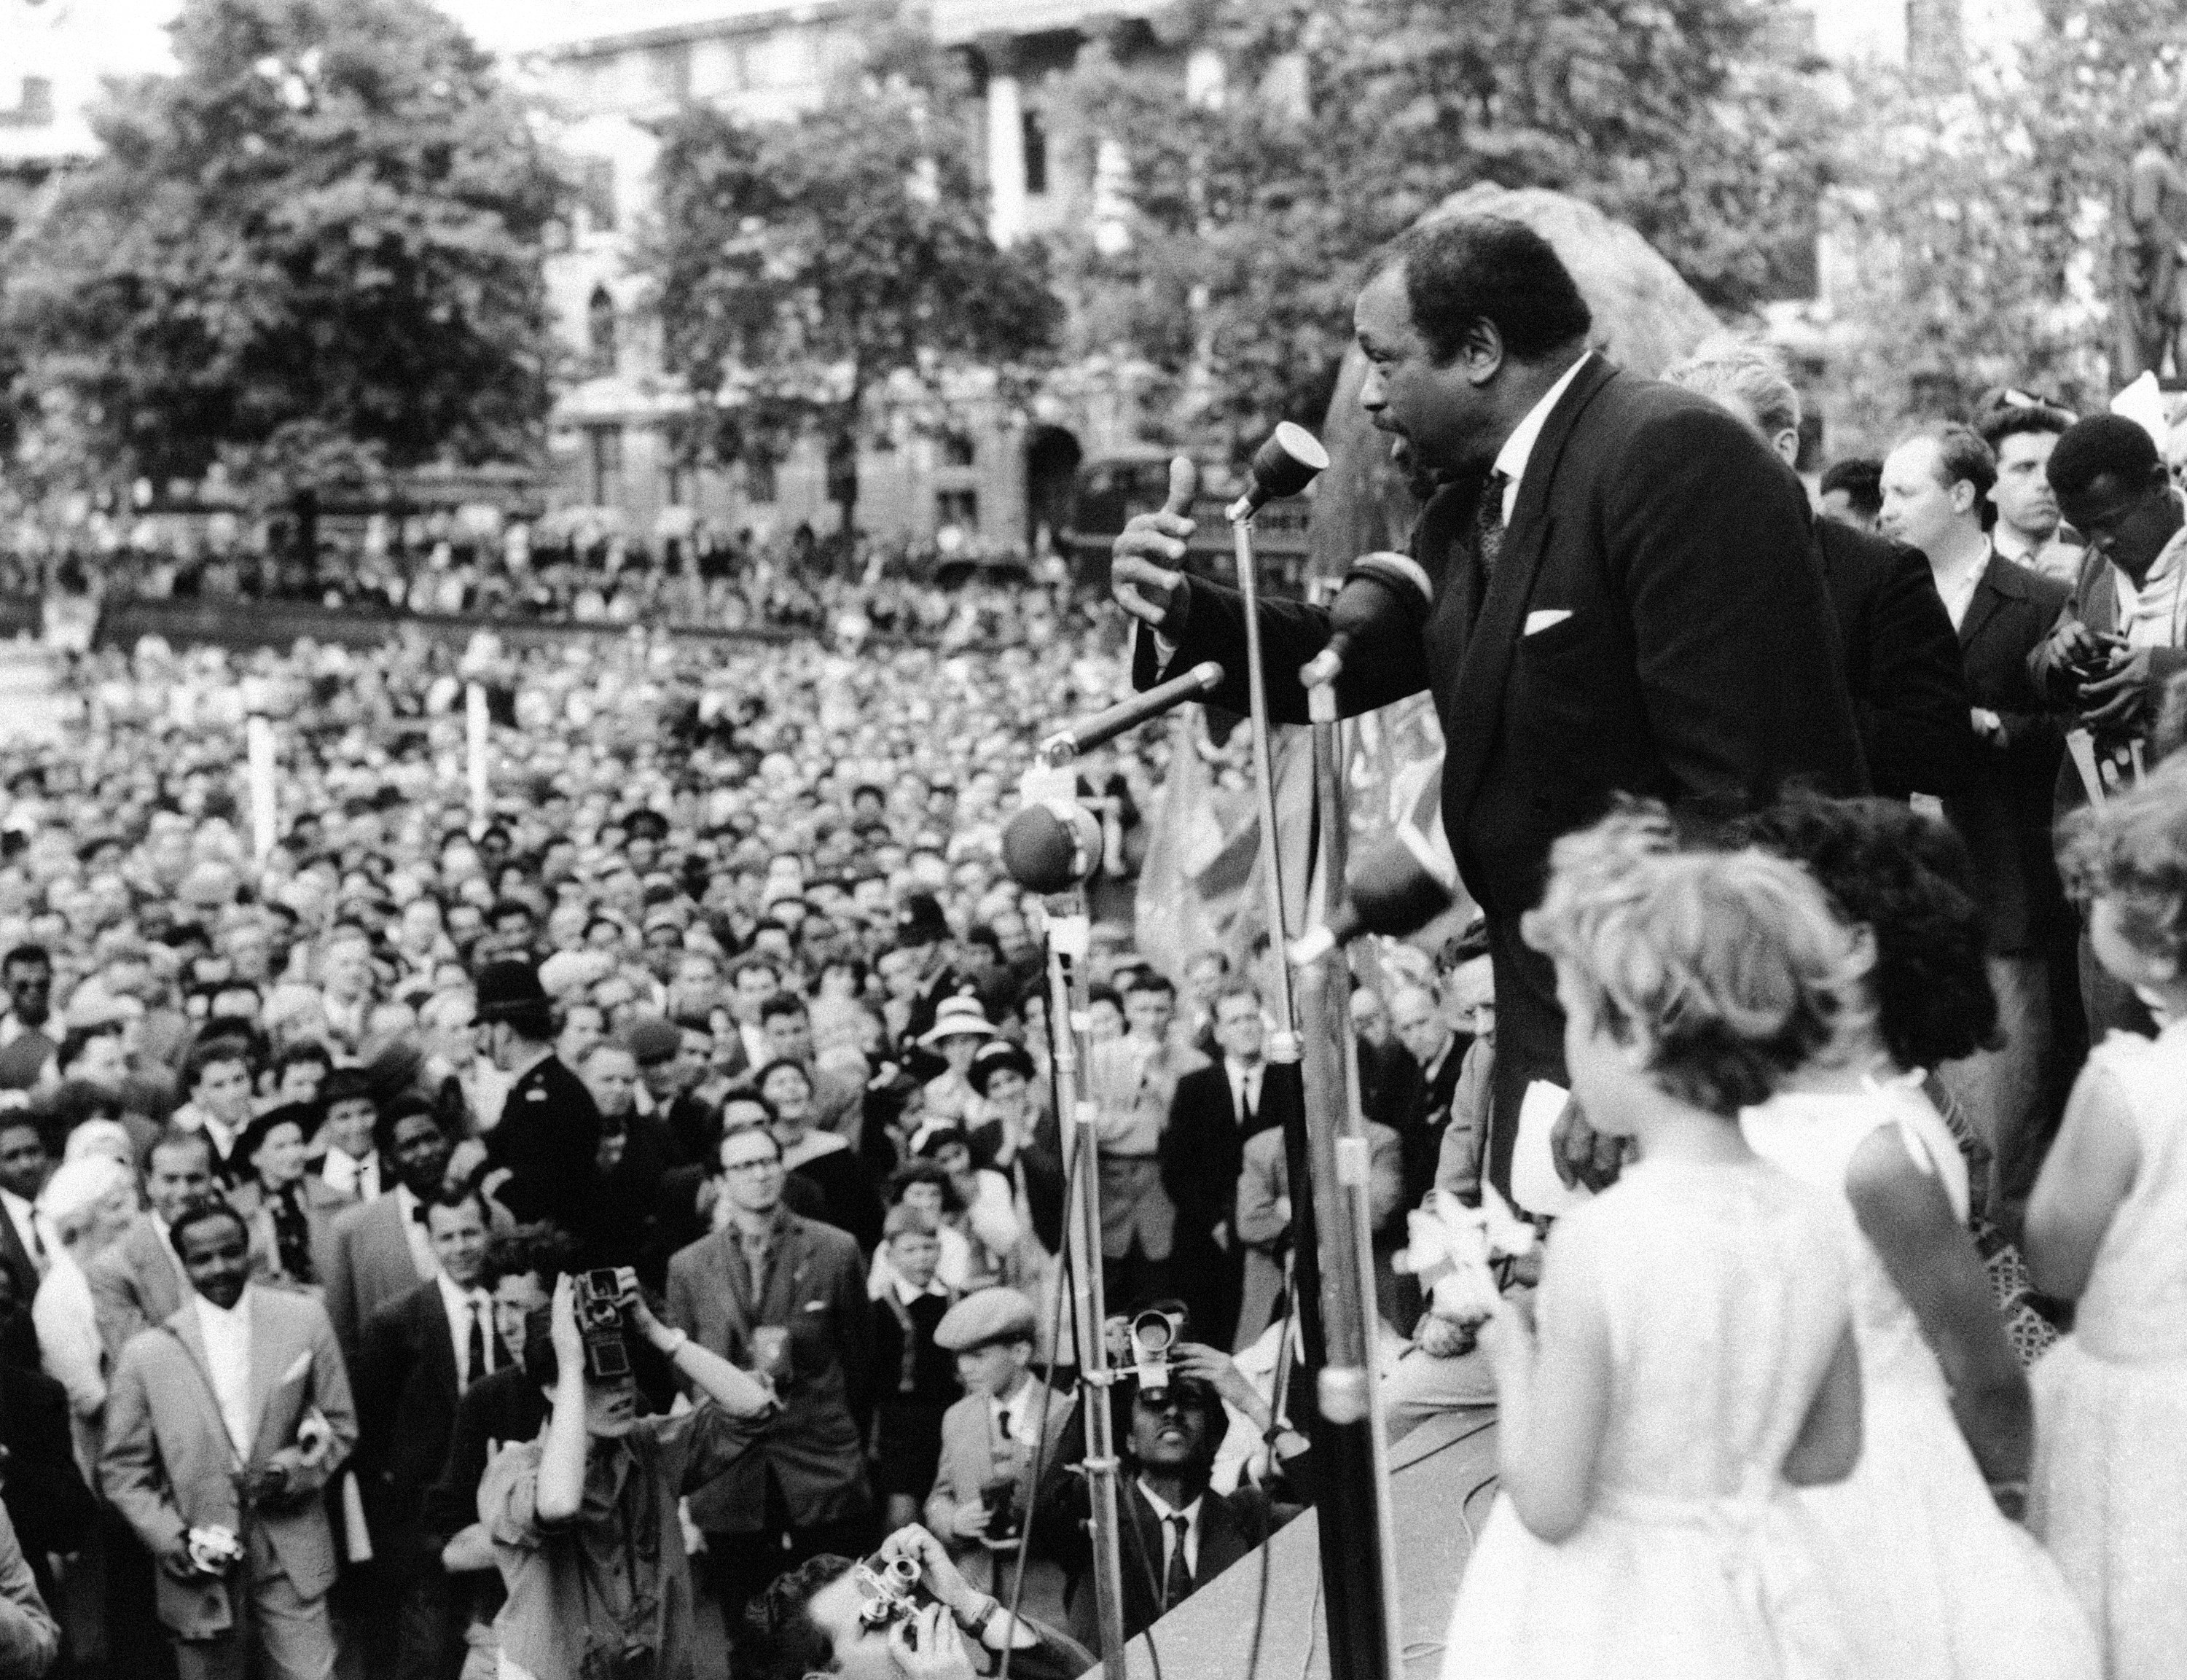 American baritone Paul Robeson speaks to crowd gathered in Trafalgar Square in London, June 28, 1959 to demonstrate against the H-bomb and nuclear weapons. Some 10,000 demonstrators marched to Trafalgar Square from Hyde Park for the rally. The procession was made up of groups and trade unionists and peace organizations and left-wing political groups.